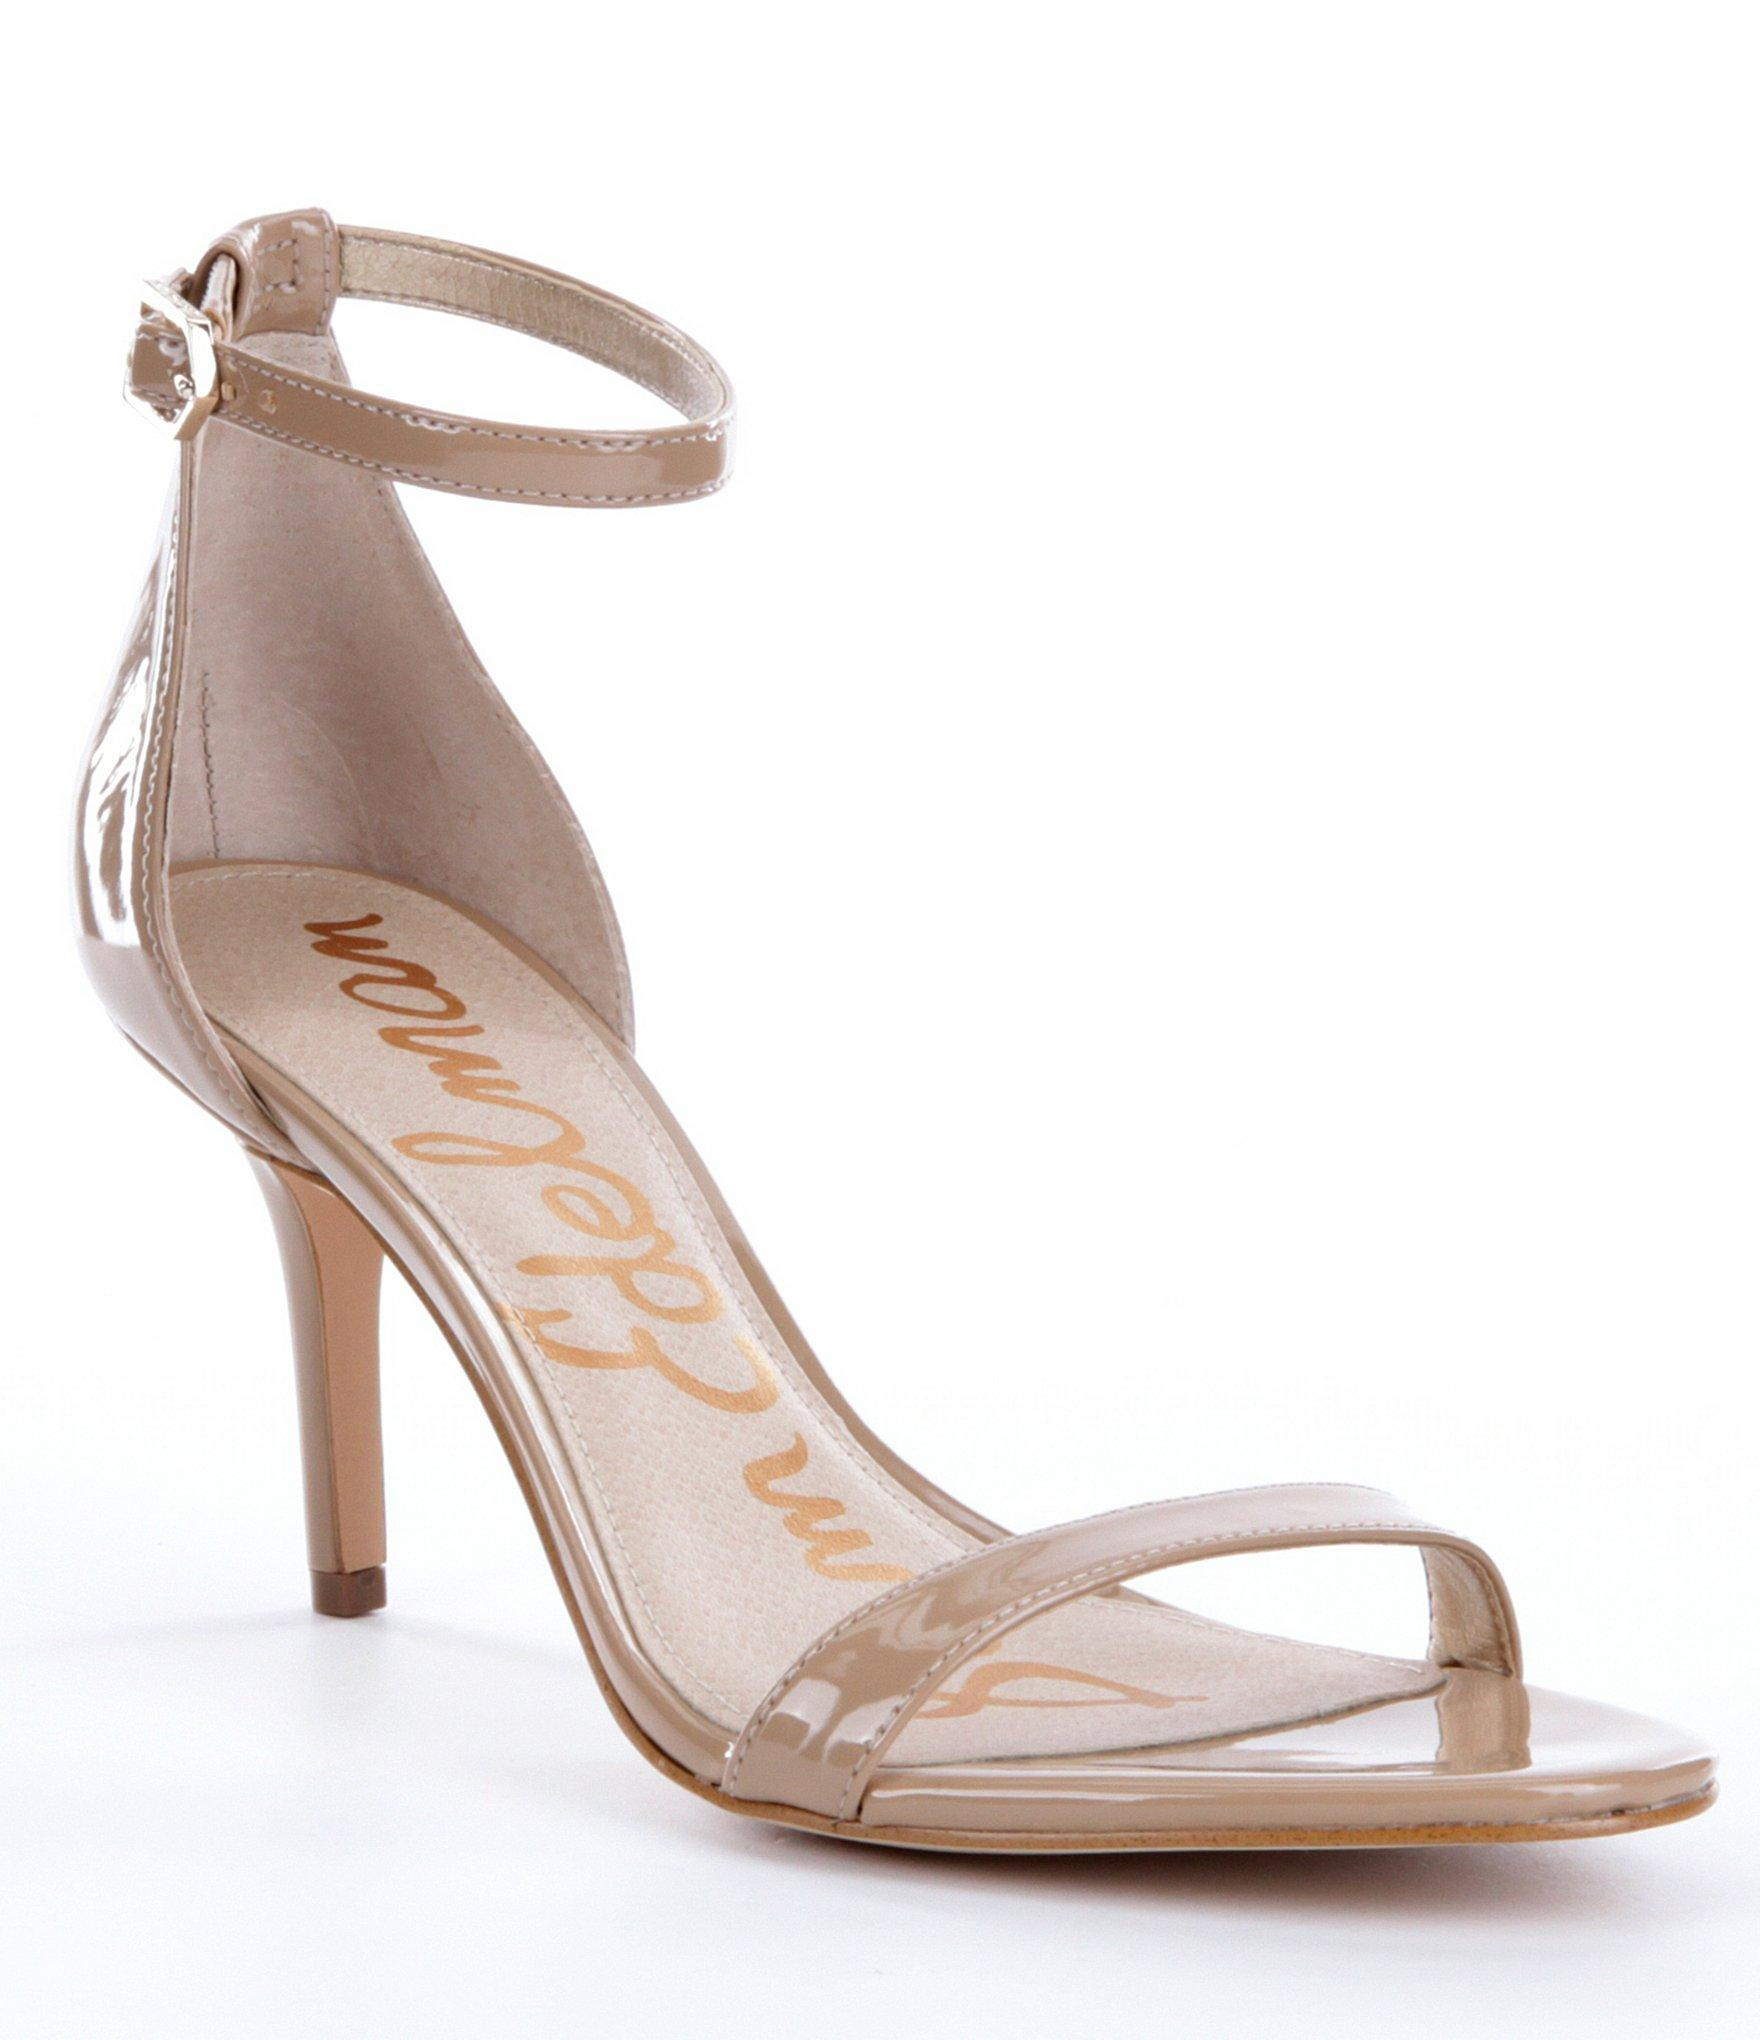 a0ab752cc Lyst - Sam Edelman Patti Ankle Strap Dress Sandals in Natural